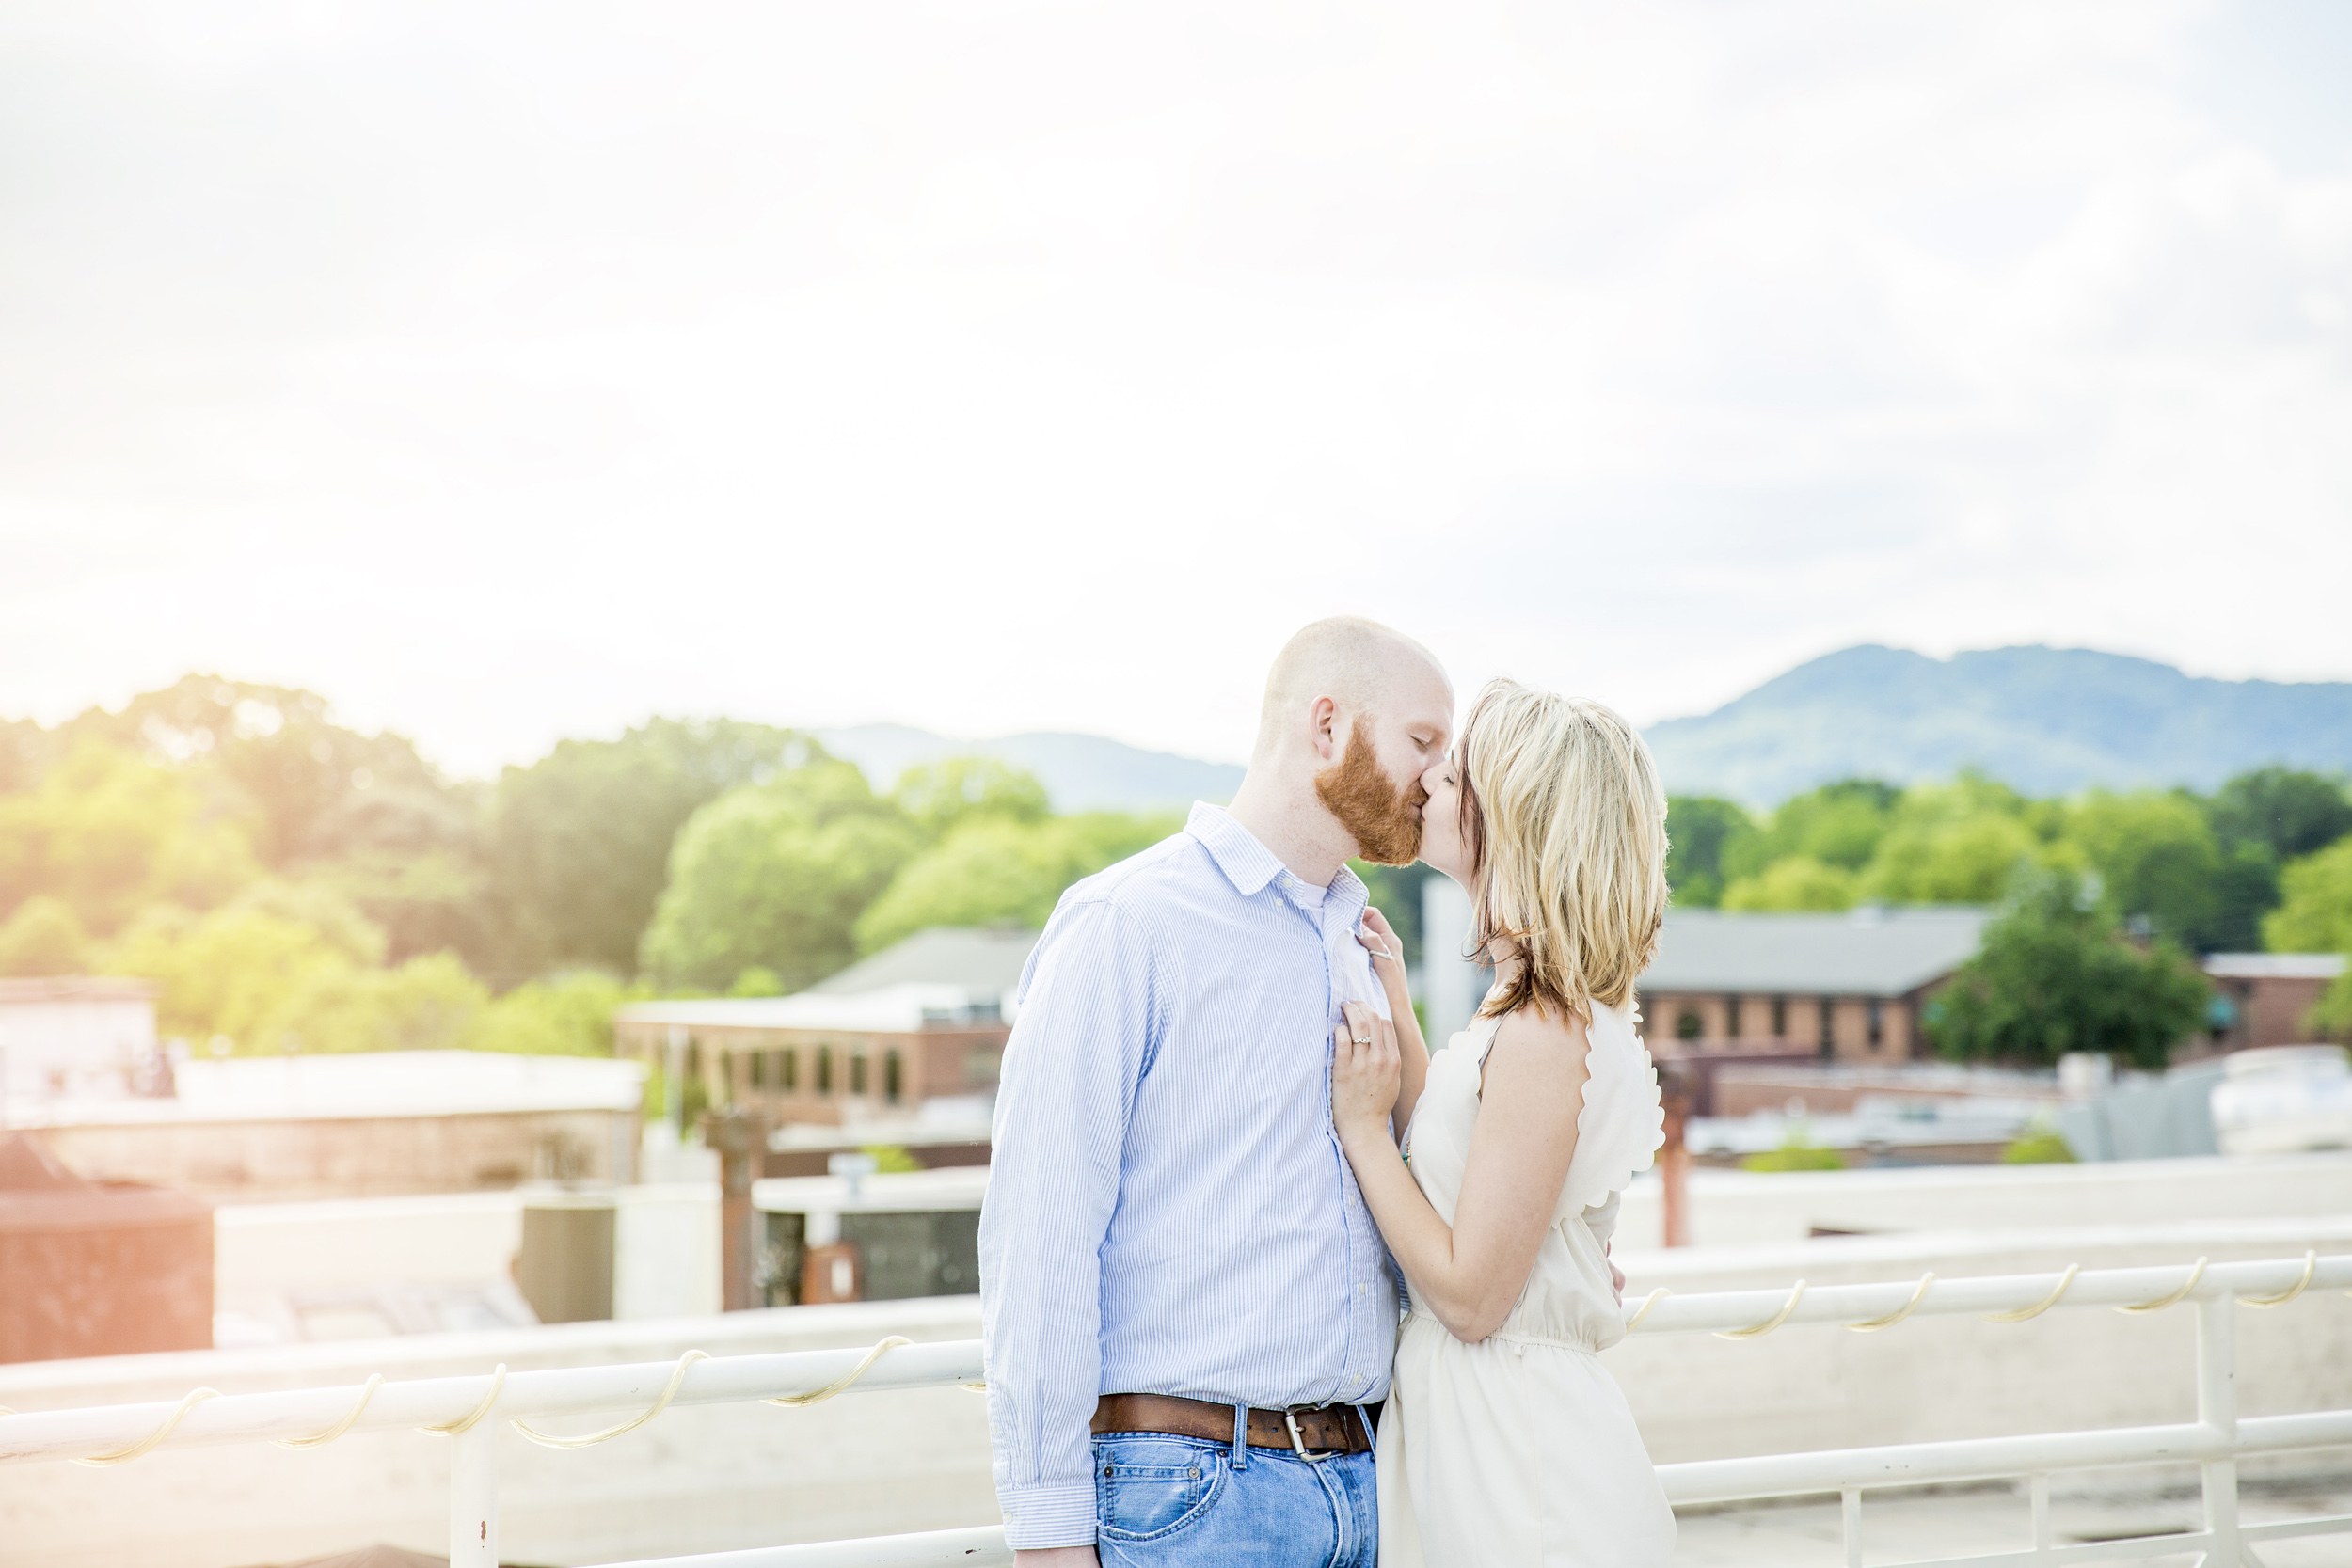 atlanta wedding photography - allison and griffin engagement - marietta square - between the blinks 1003.jpg